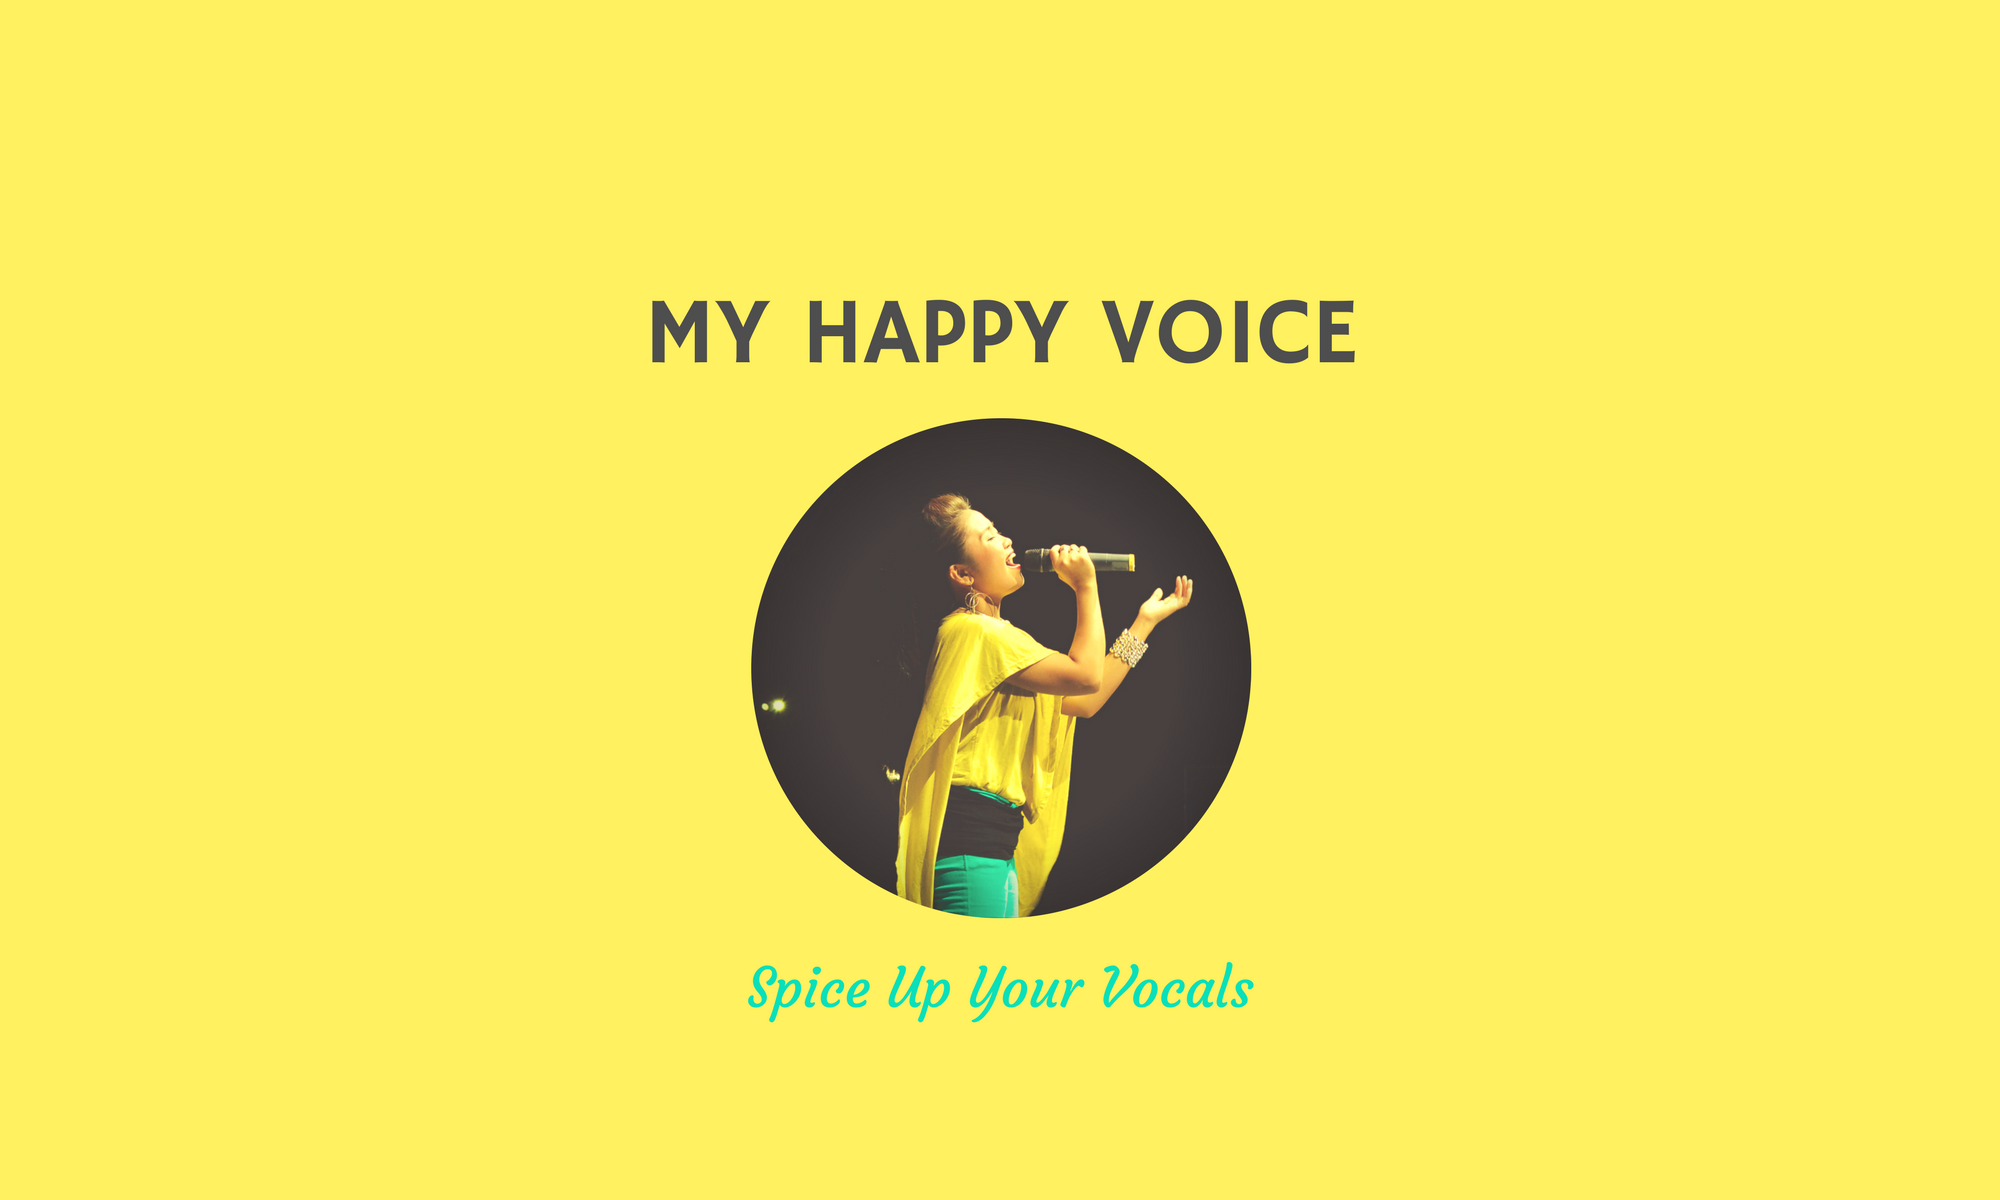 MY HAPPY VOICE